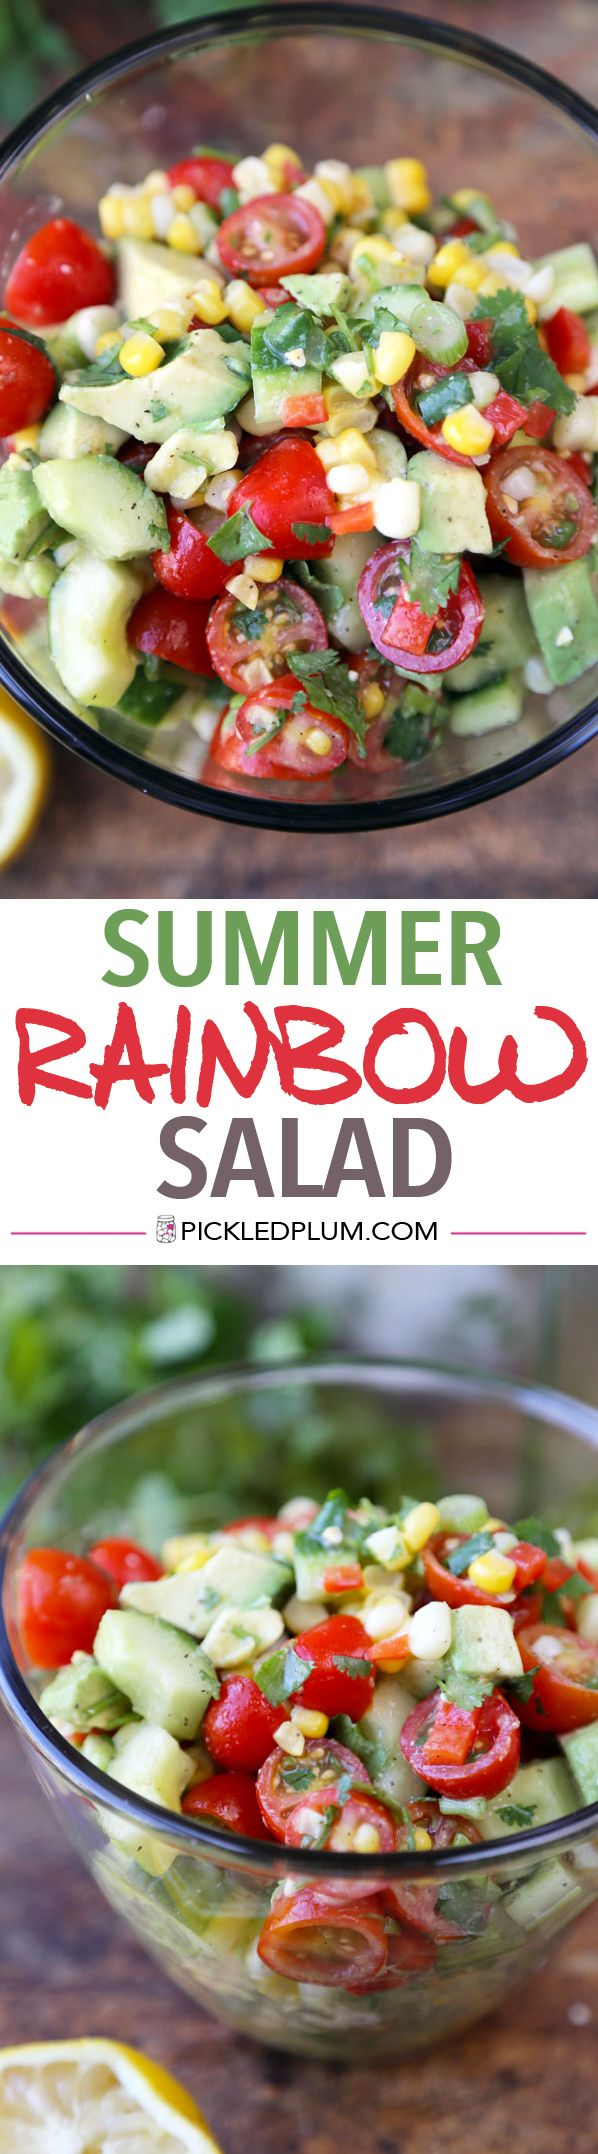 Food Recipe: SUMMER RAINBOW SALAD - Summer cooking should never take more than 15 minutes! #vegan #glutenfree #healthy #recipe http://www.pickledplum.com/summer-rainbow-salad-recipe/ http://www.pickledplum.com/summer-rainbow-salad-recipe/